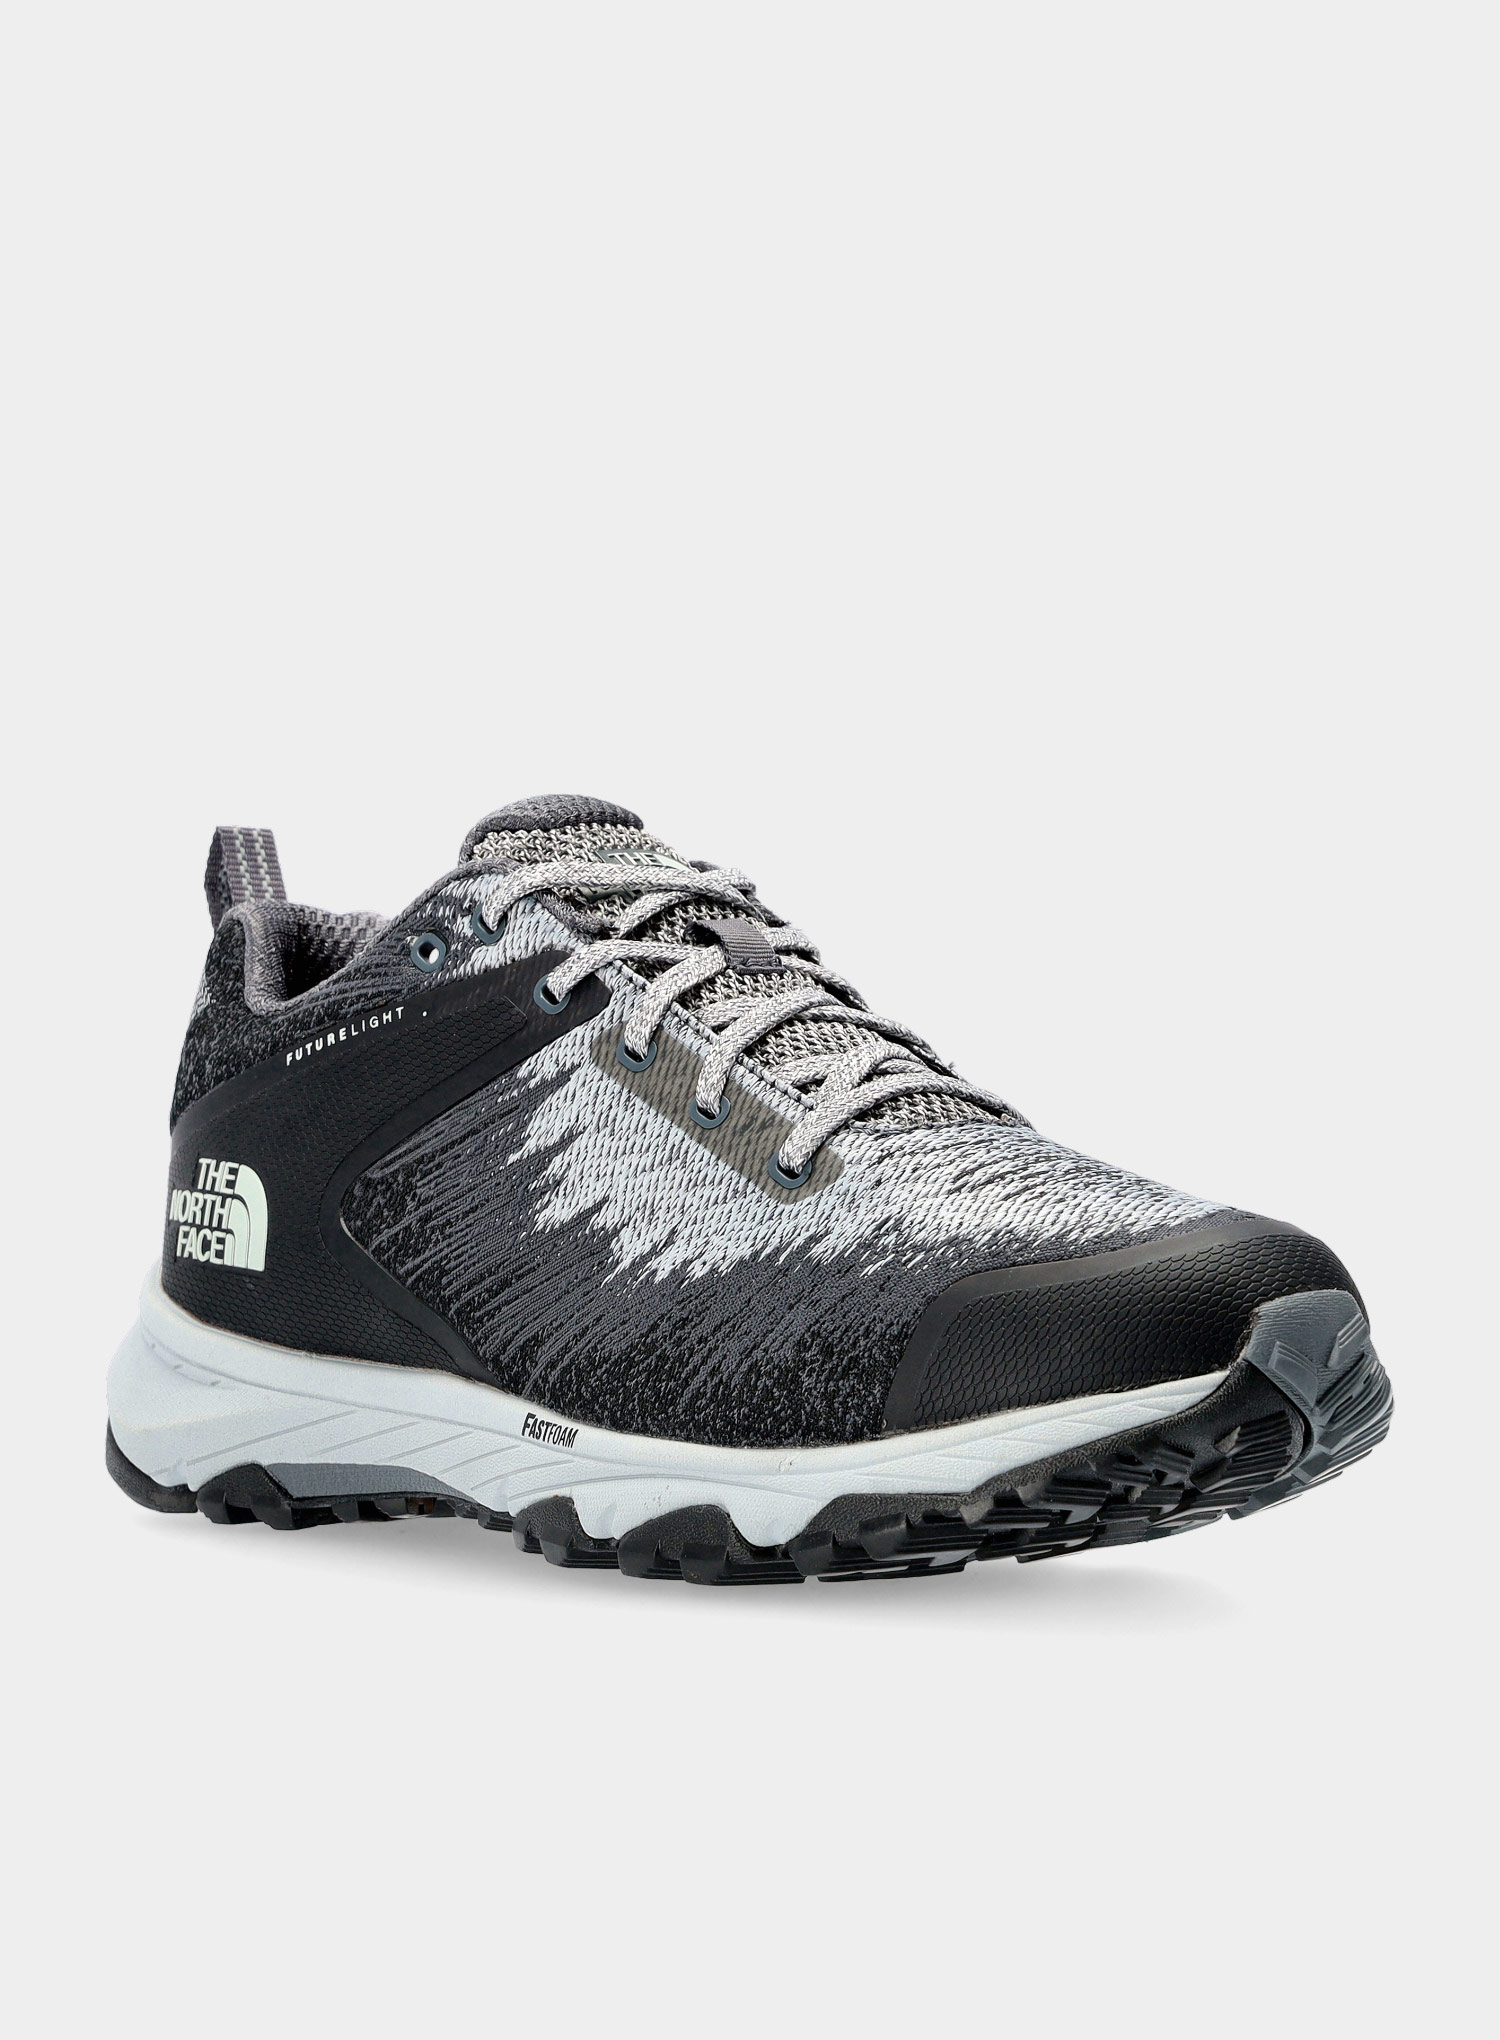 Buty The North Face Ultra Fastpack IV FutureLight - grey - zdjęcie nr. 3